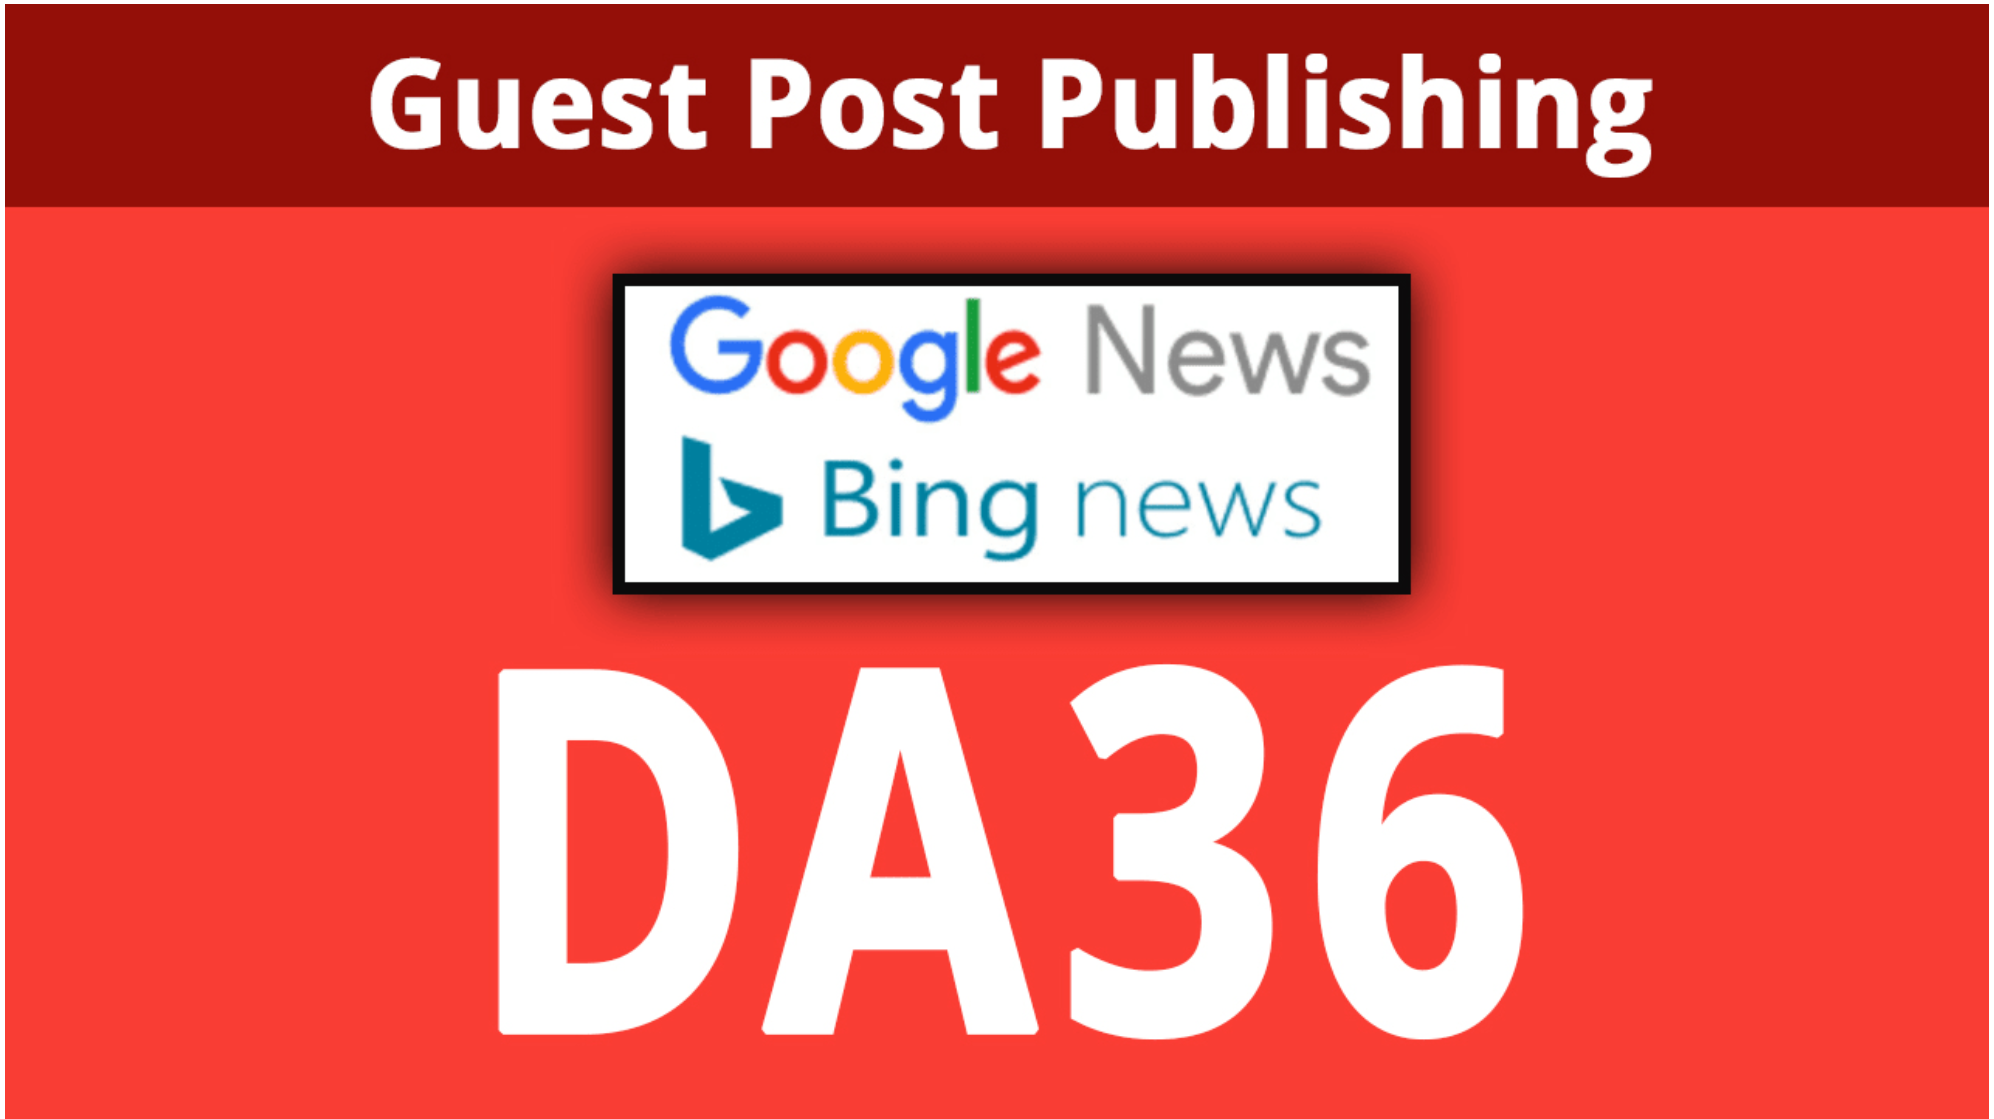 guest post on da 36 google news blog with dofollow link